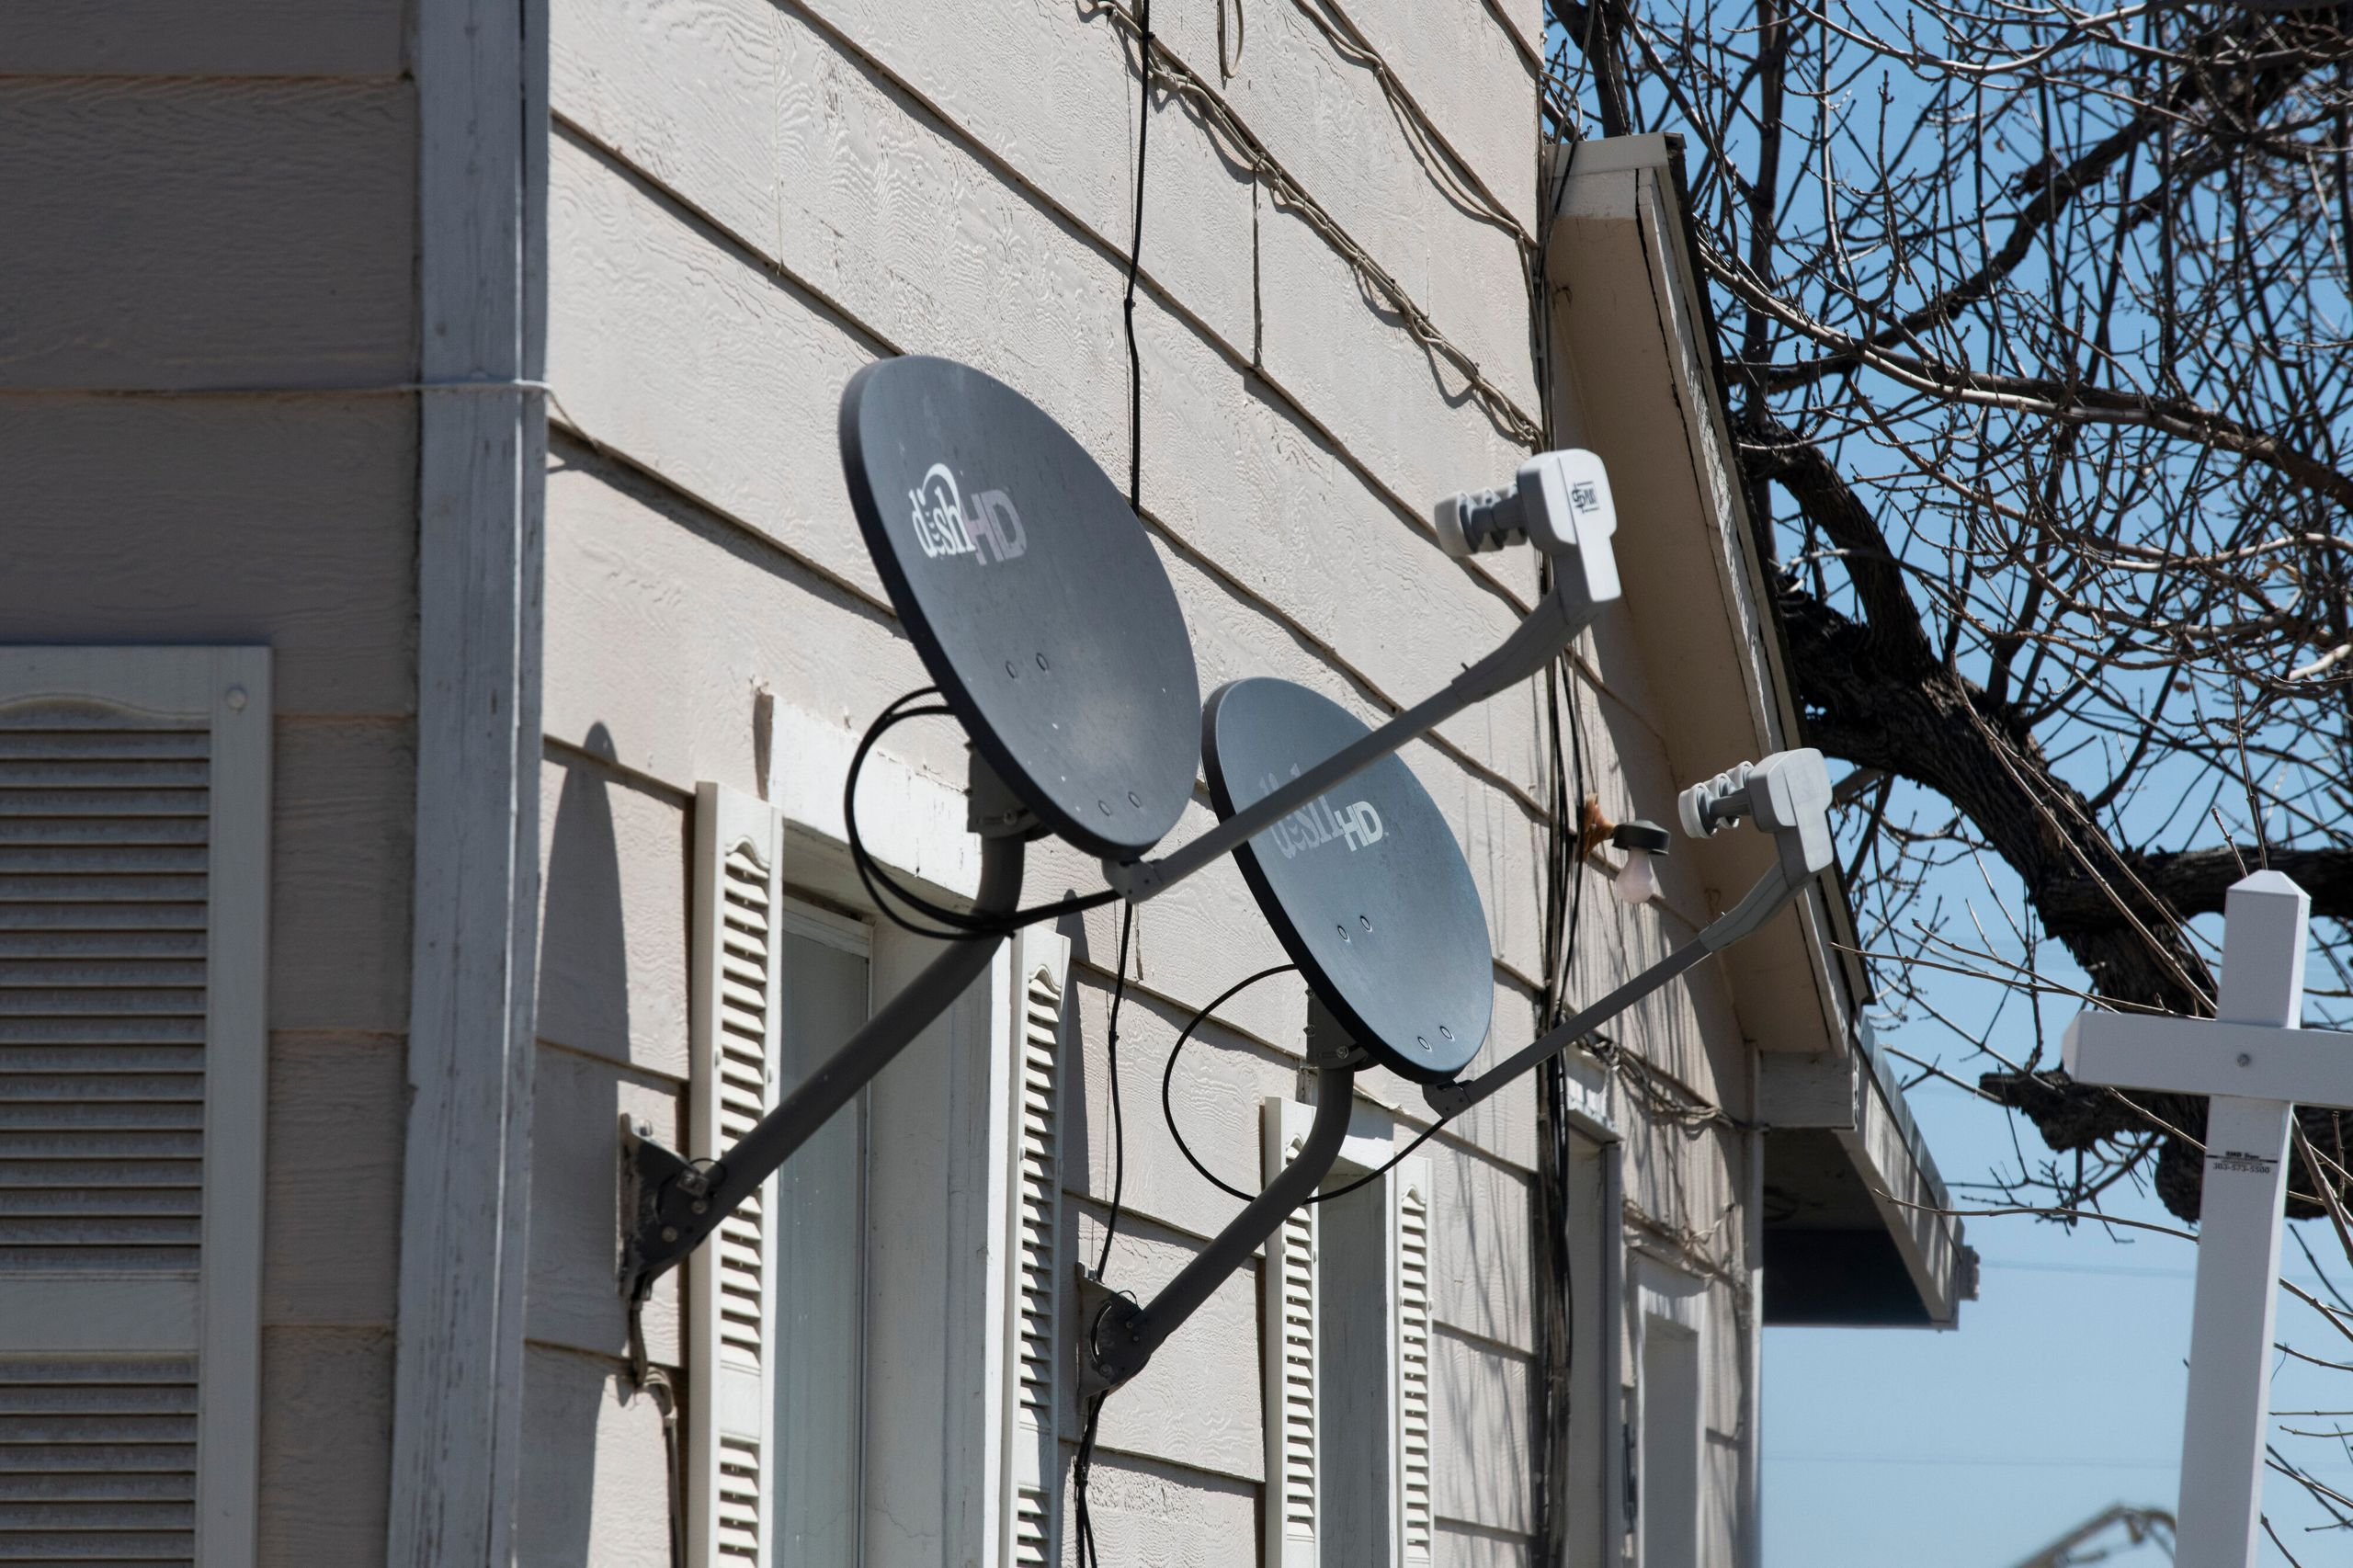 Satellite dishes for TV are shown on the side of a house in Bennett, Colorado. Many Bennett residents rely on satellite inter